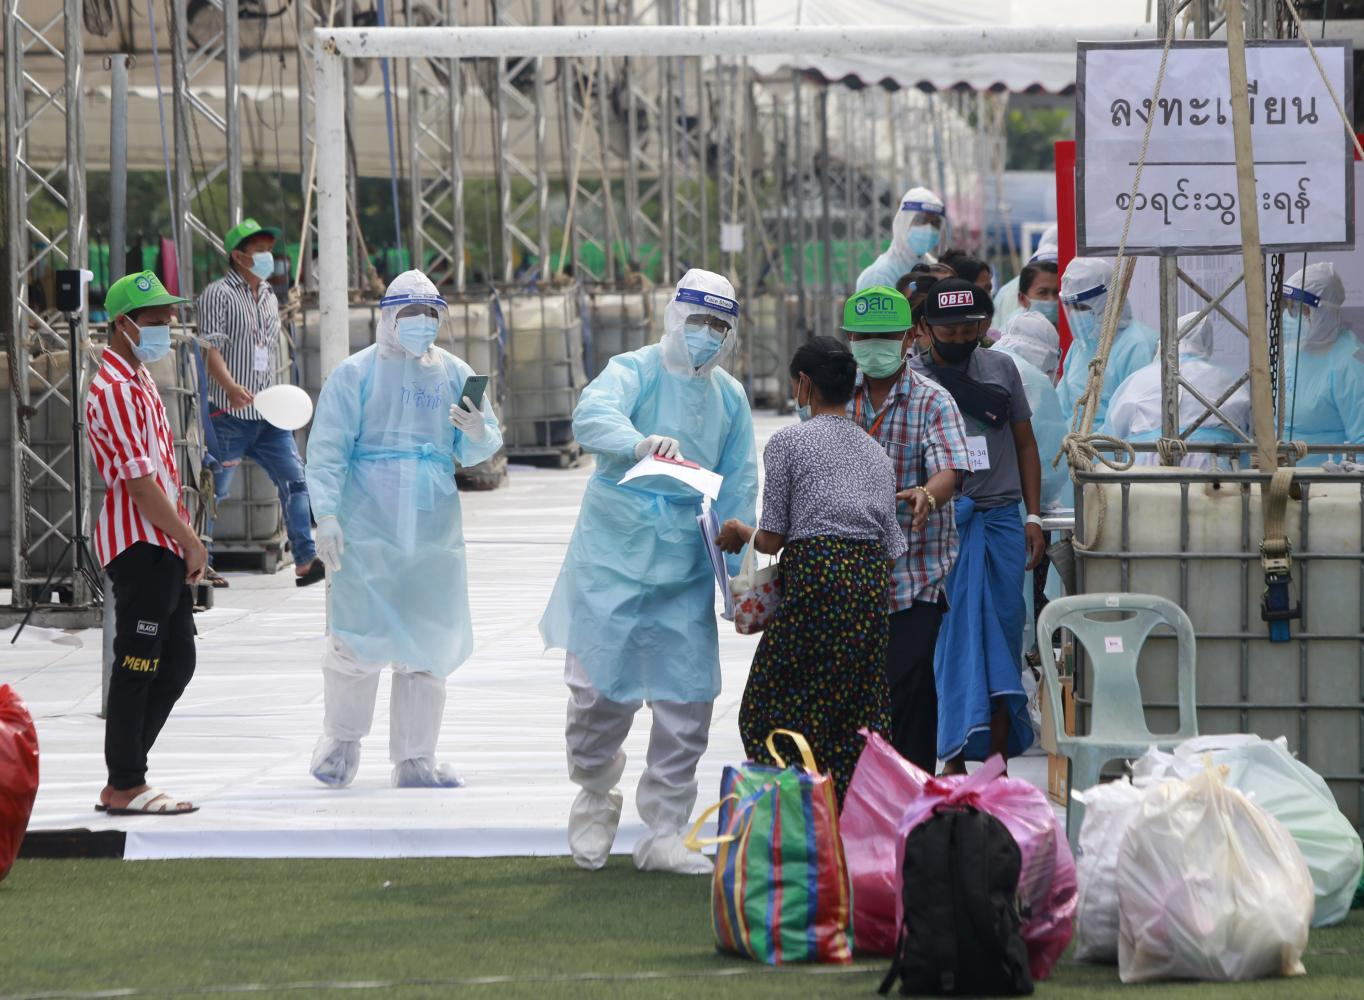 Free to leave: Myanmar workers in Samut Sakhon are released from a field hospital after recovering from Covid-19.